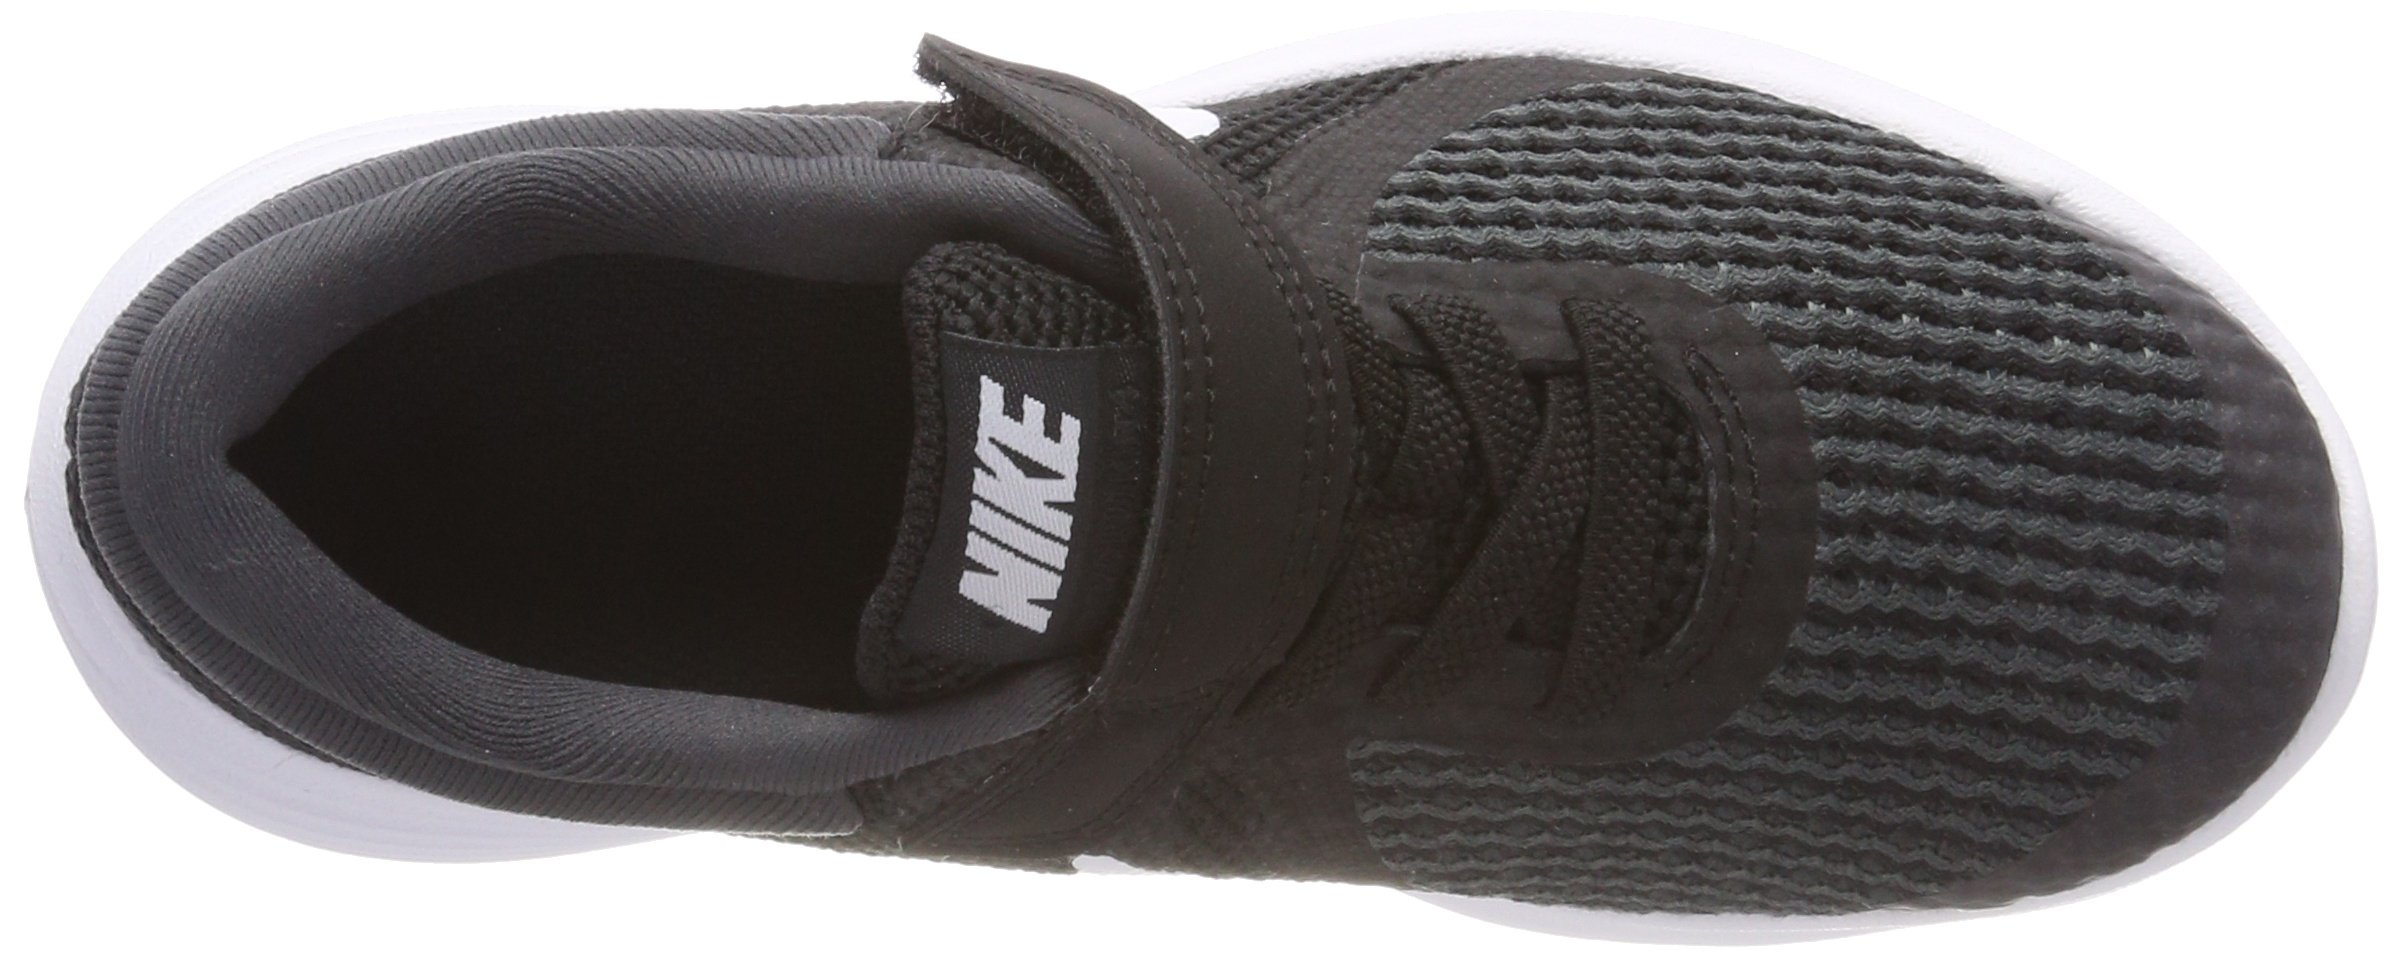 Nike Boys' Revolution 4 (PSV) Running Shoe, Black/White-Anthracite, 10.5C Youth US Little Kid by Nike (Image #7)